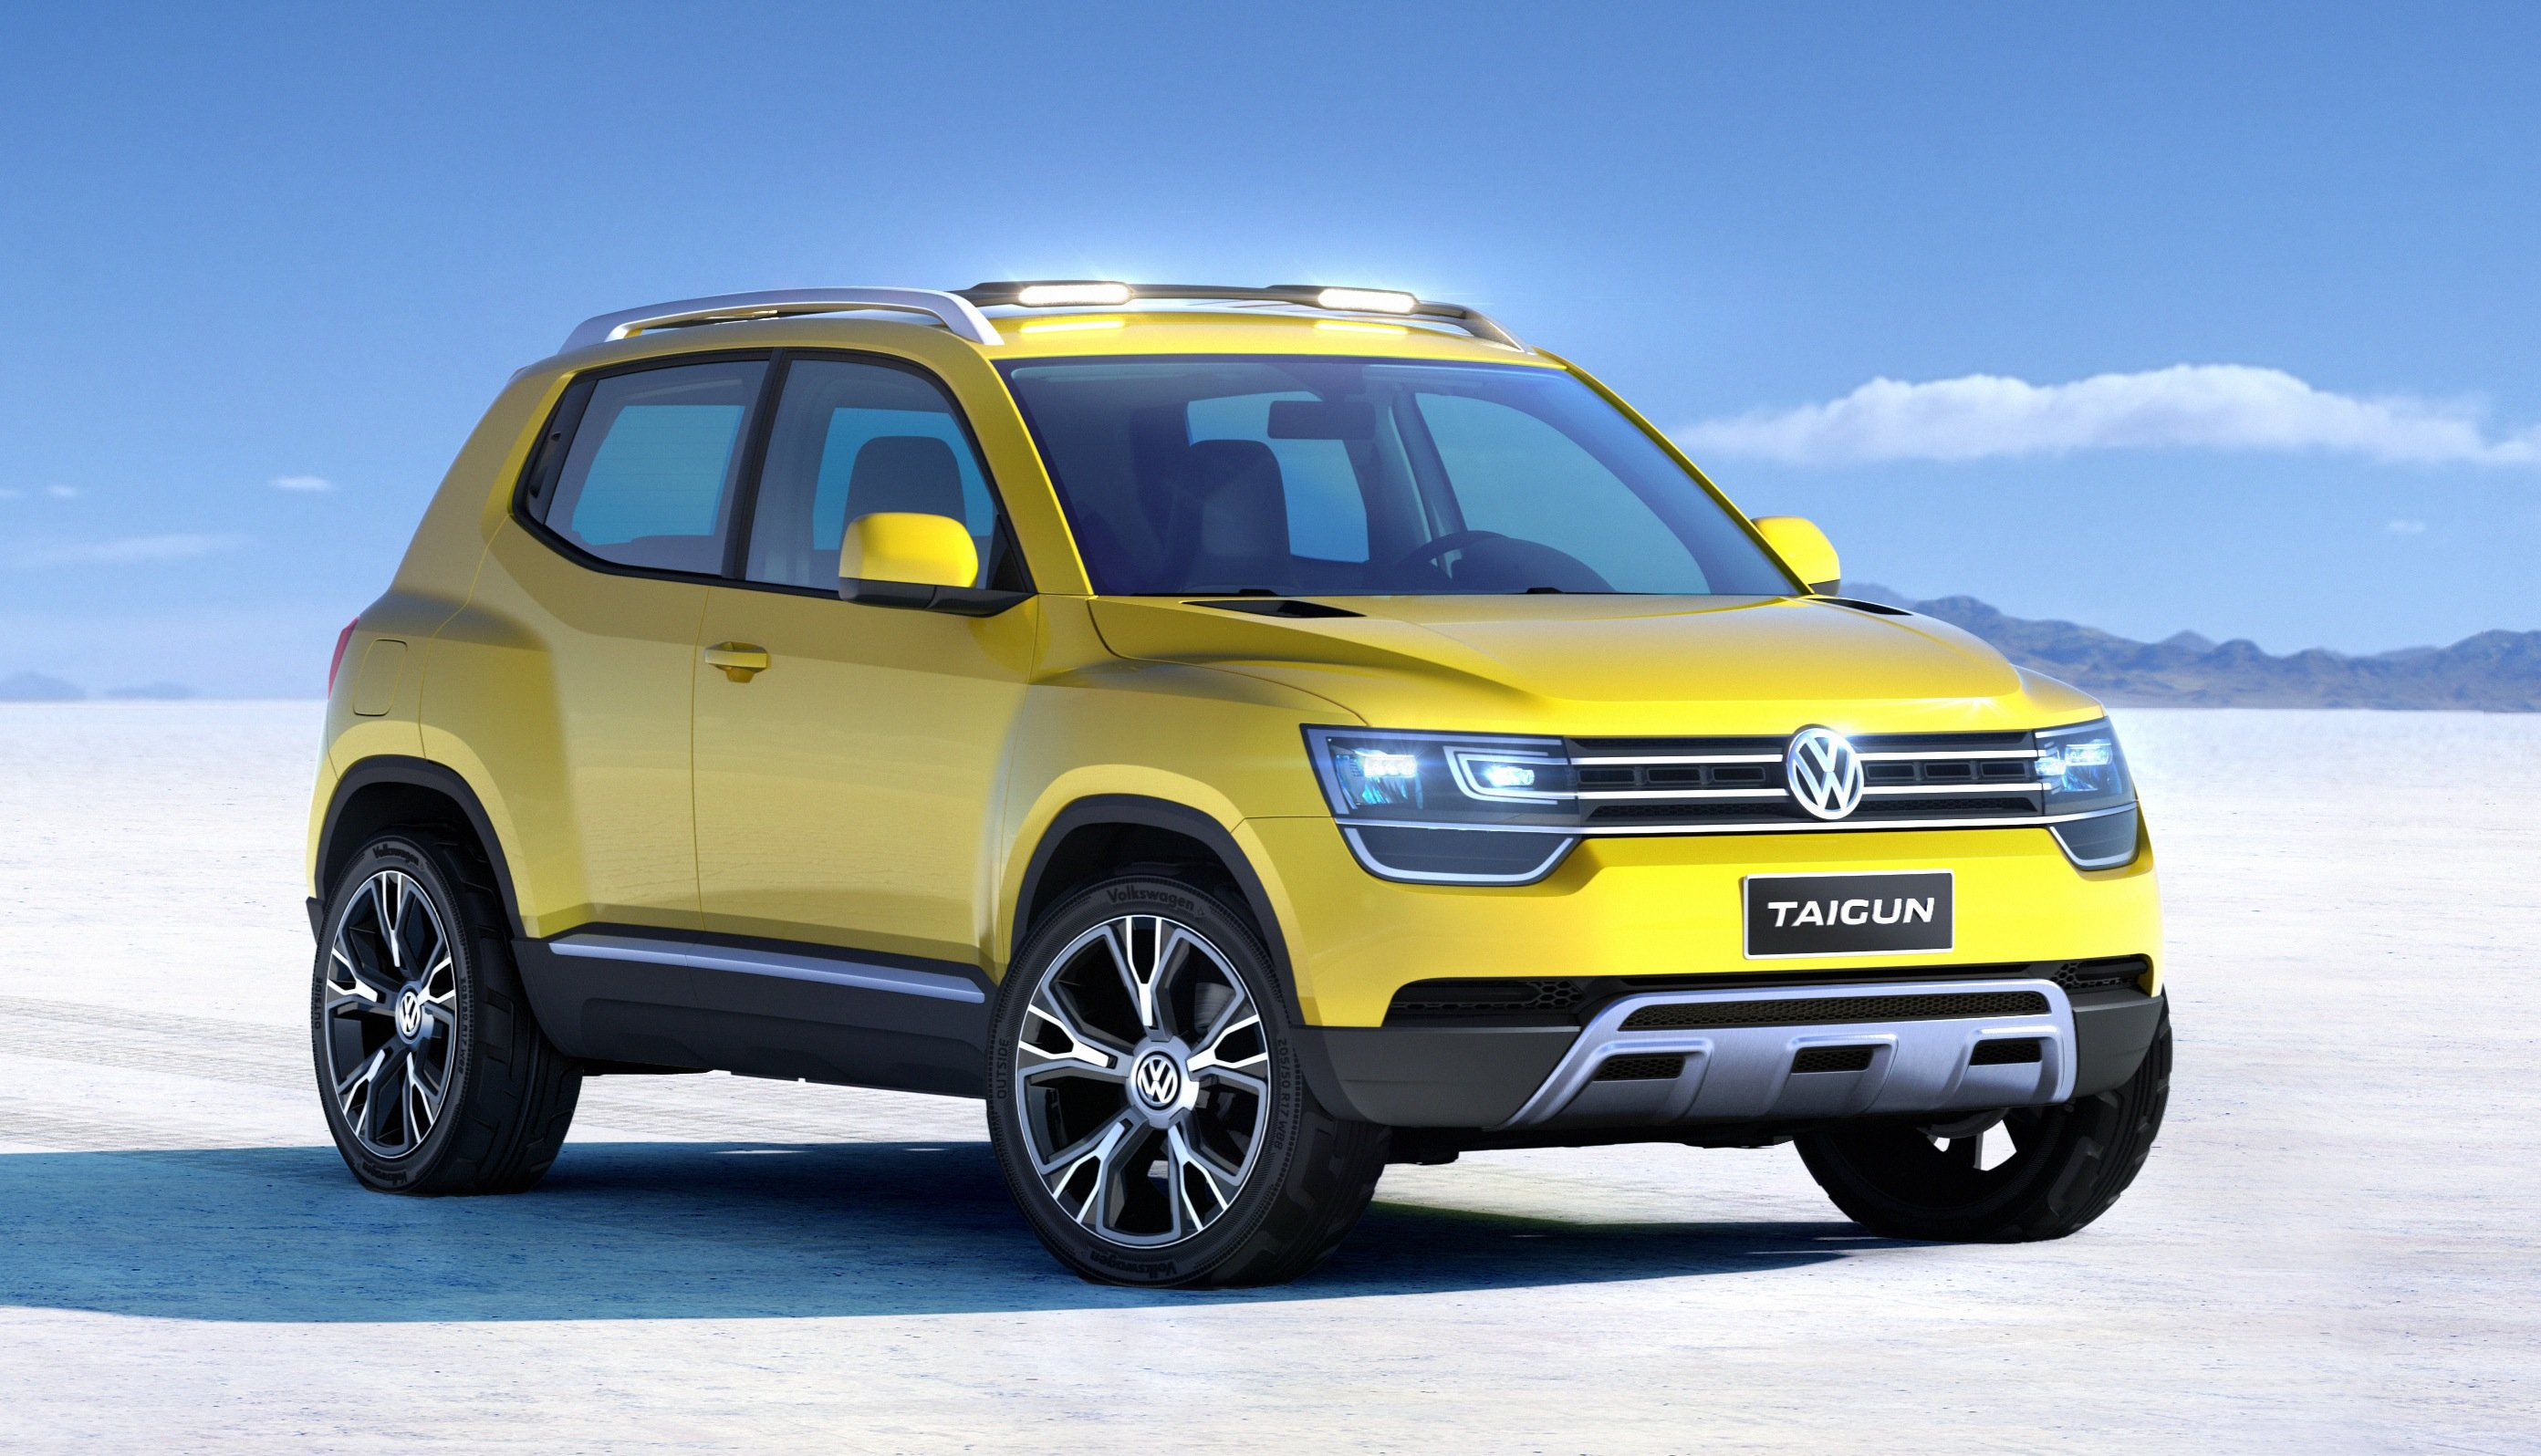 volkswagen taigun concept previews new baby suv photos. Black Bedroom Furniture Sets. Home Design Ideas